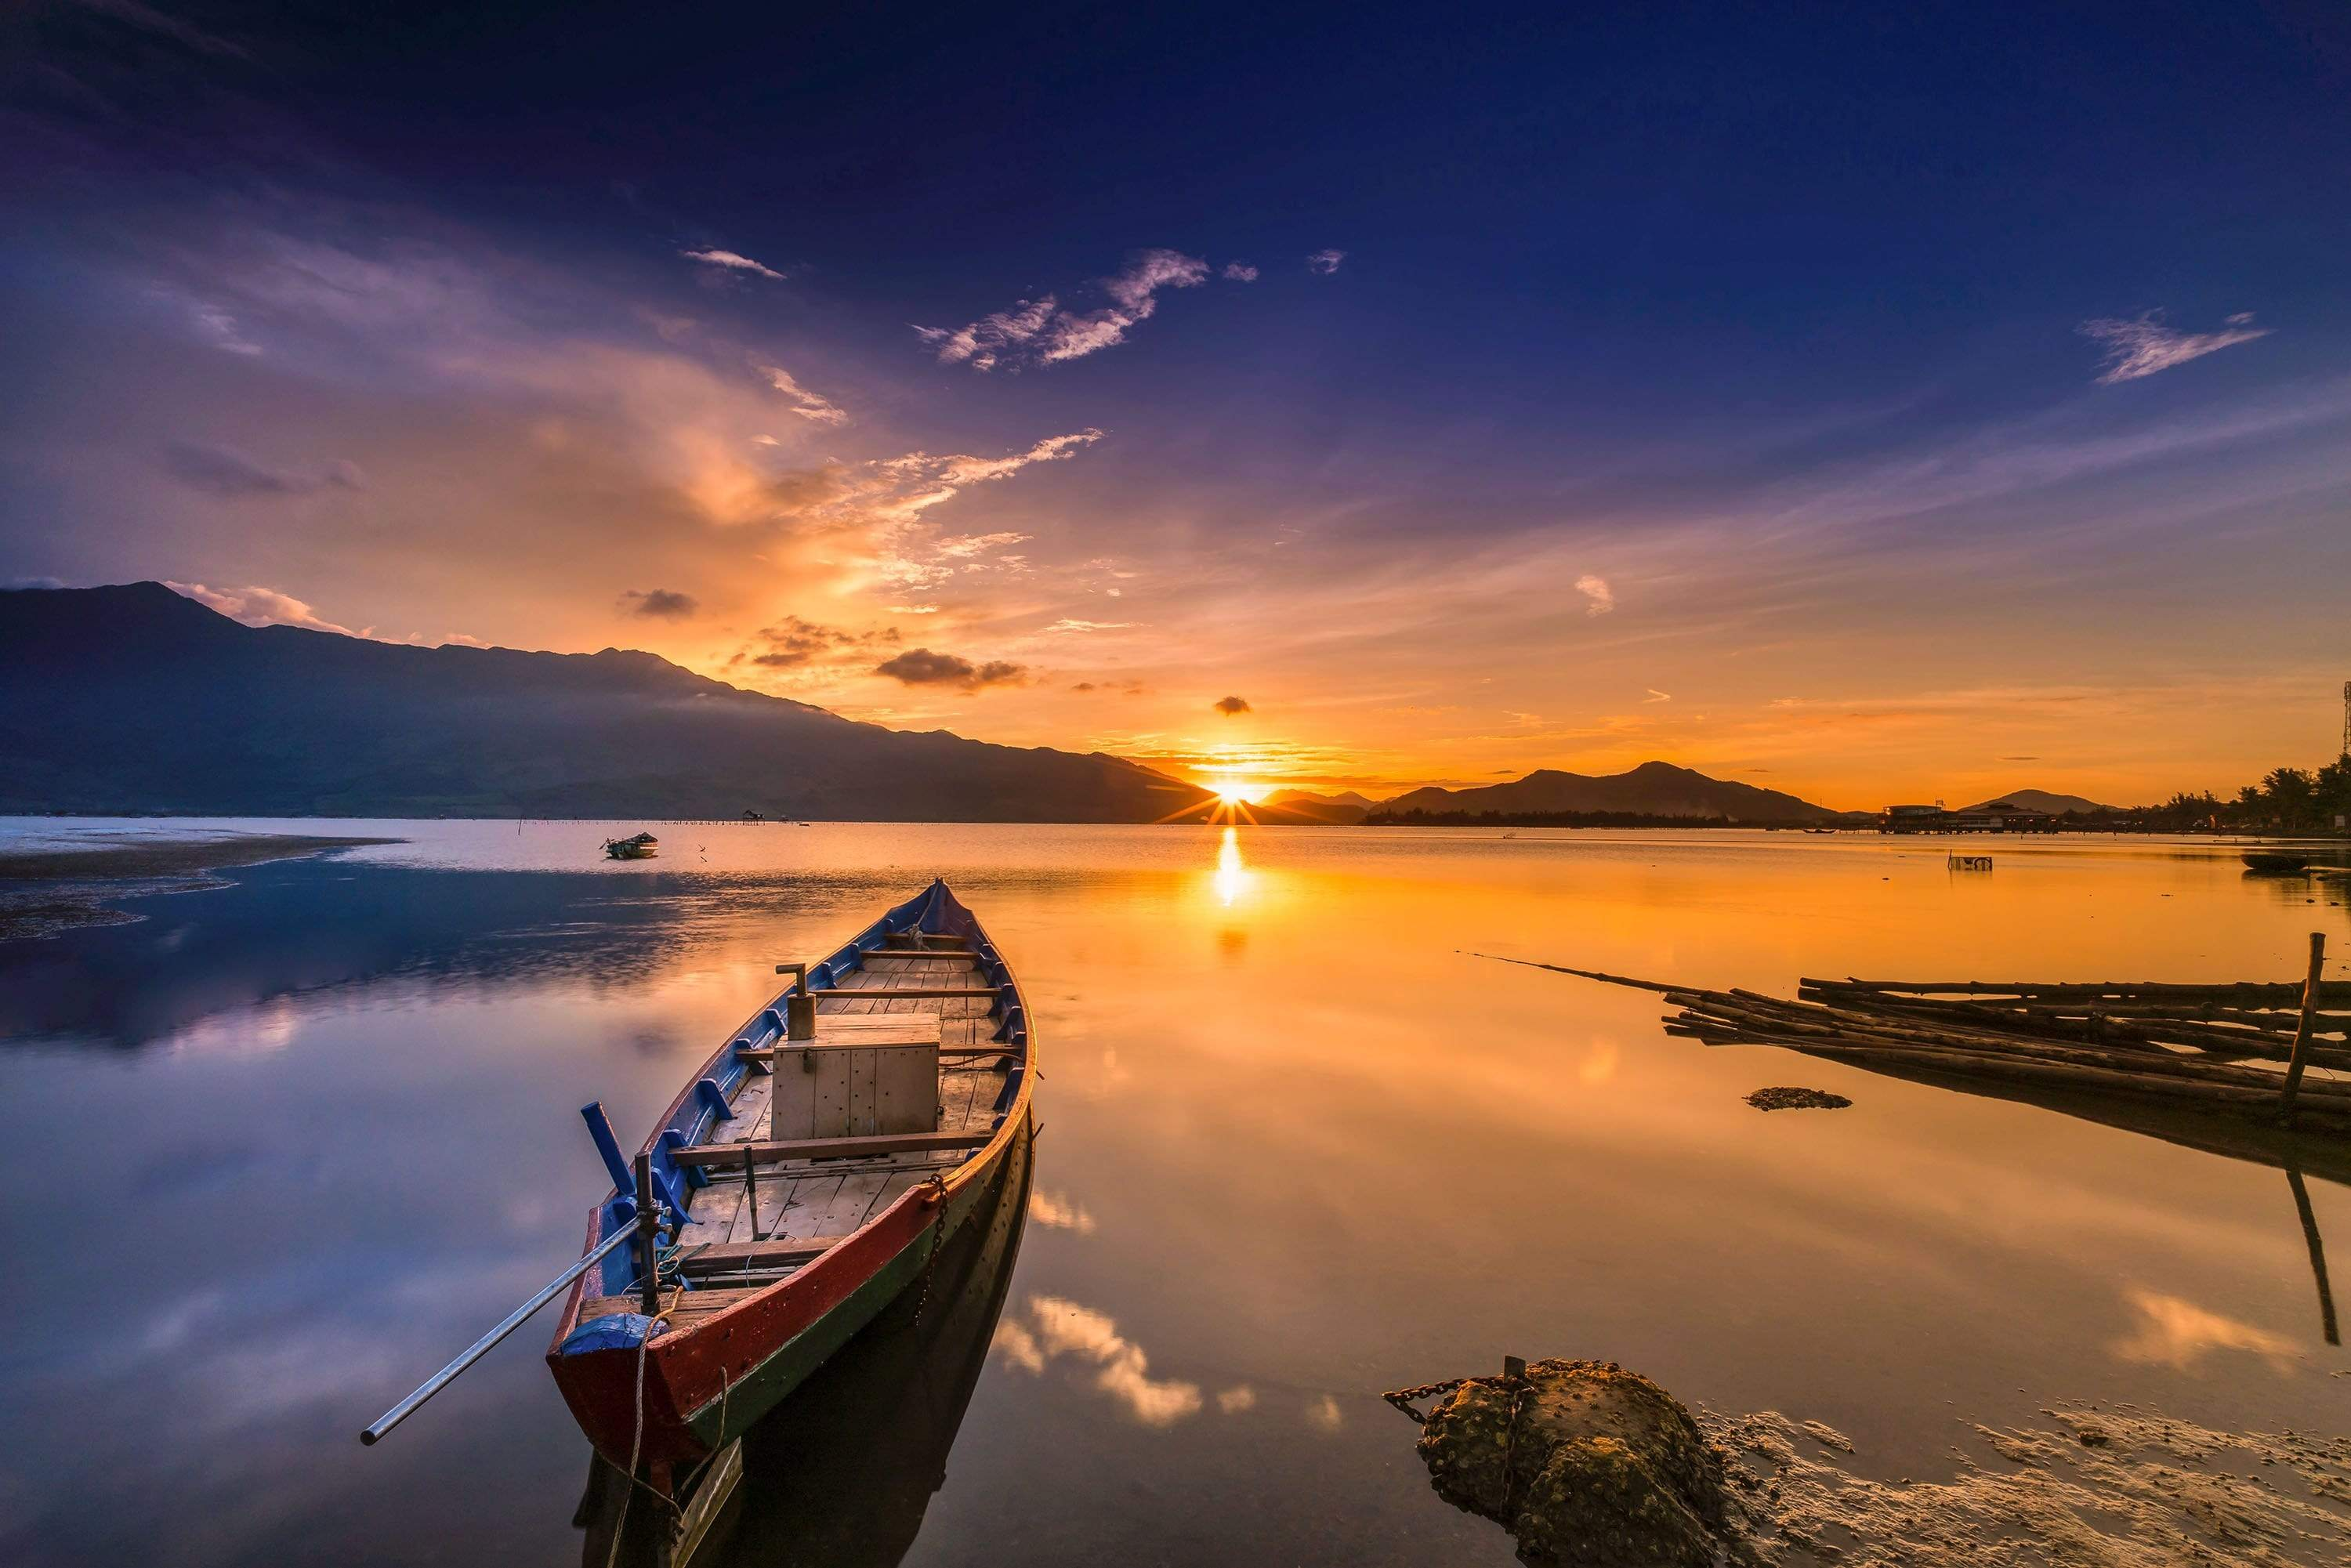 Boat overlooking water with sunset